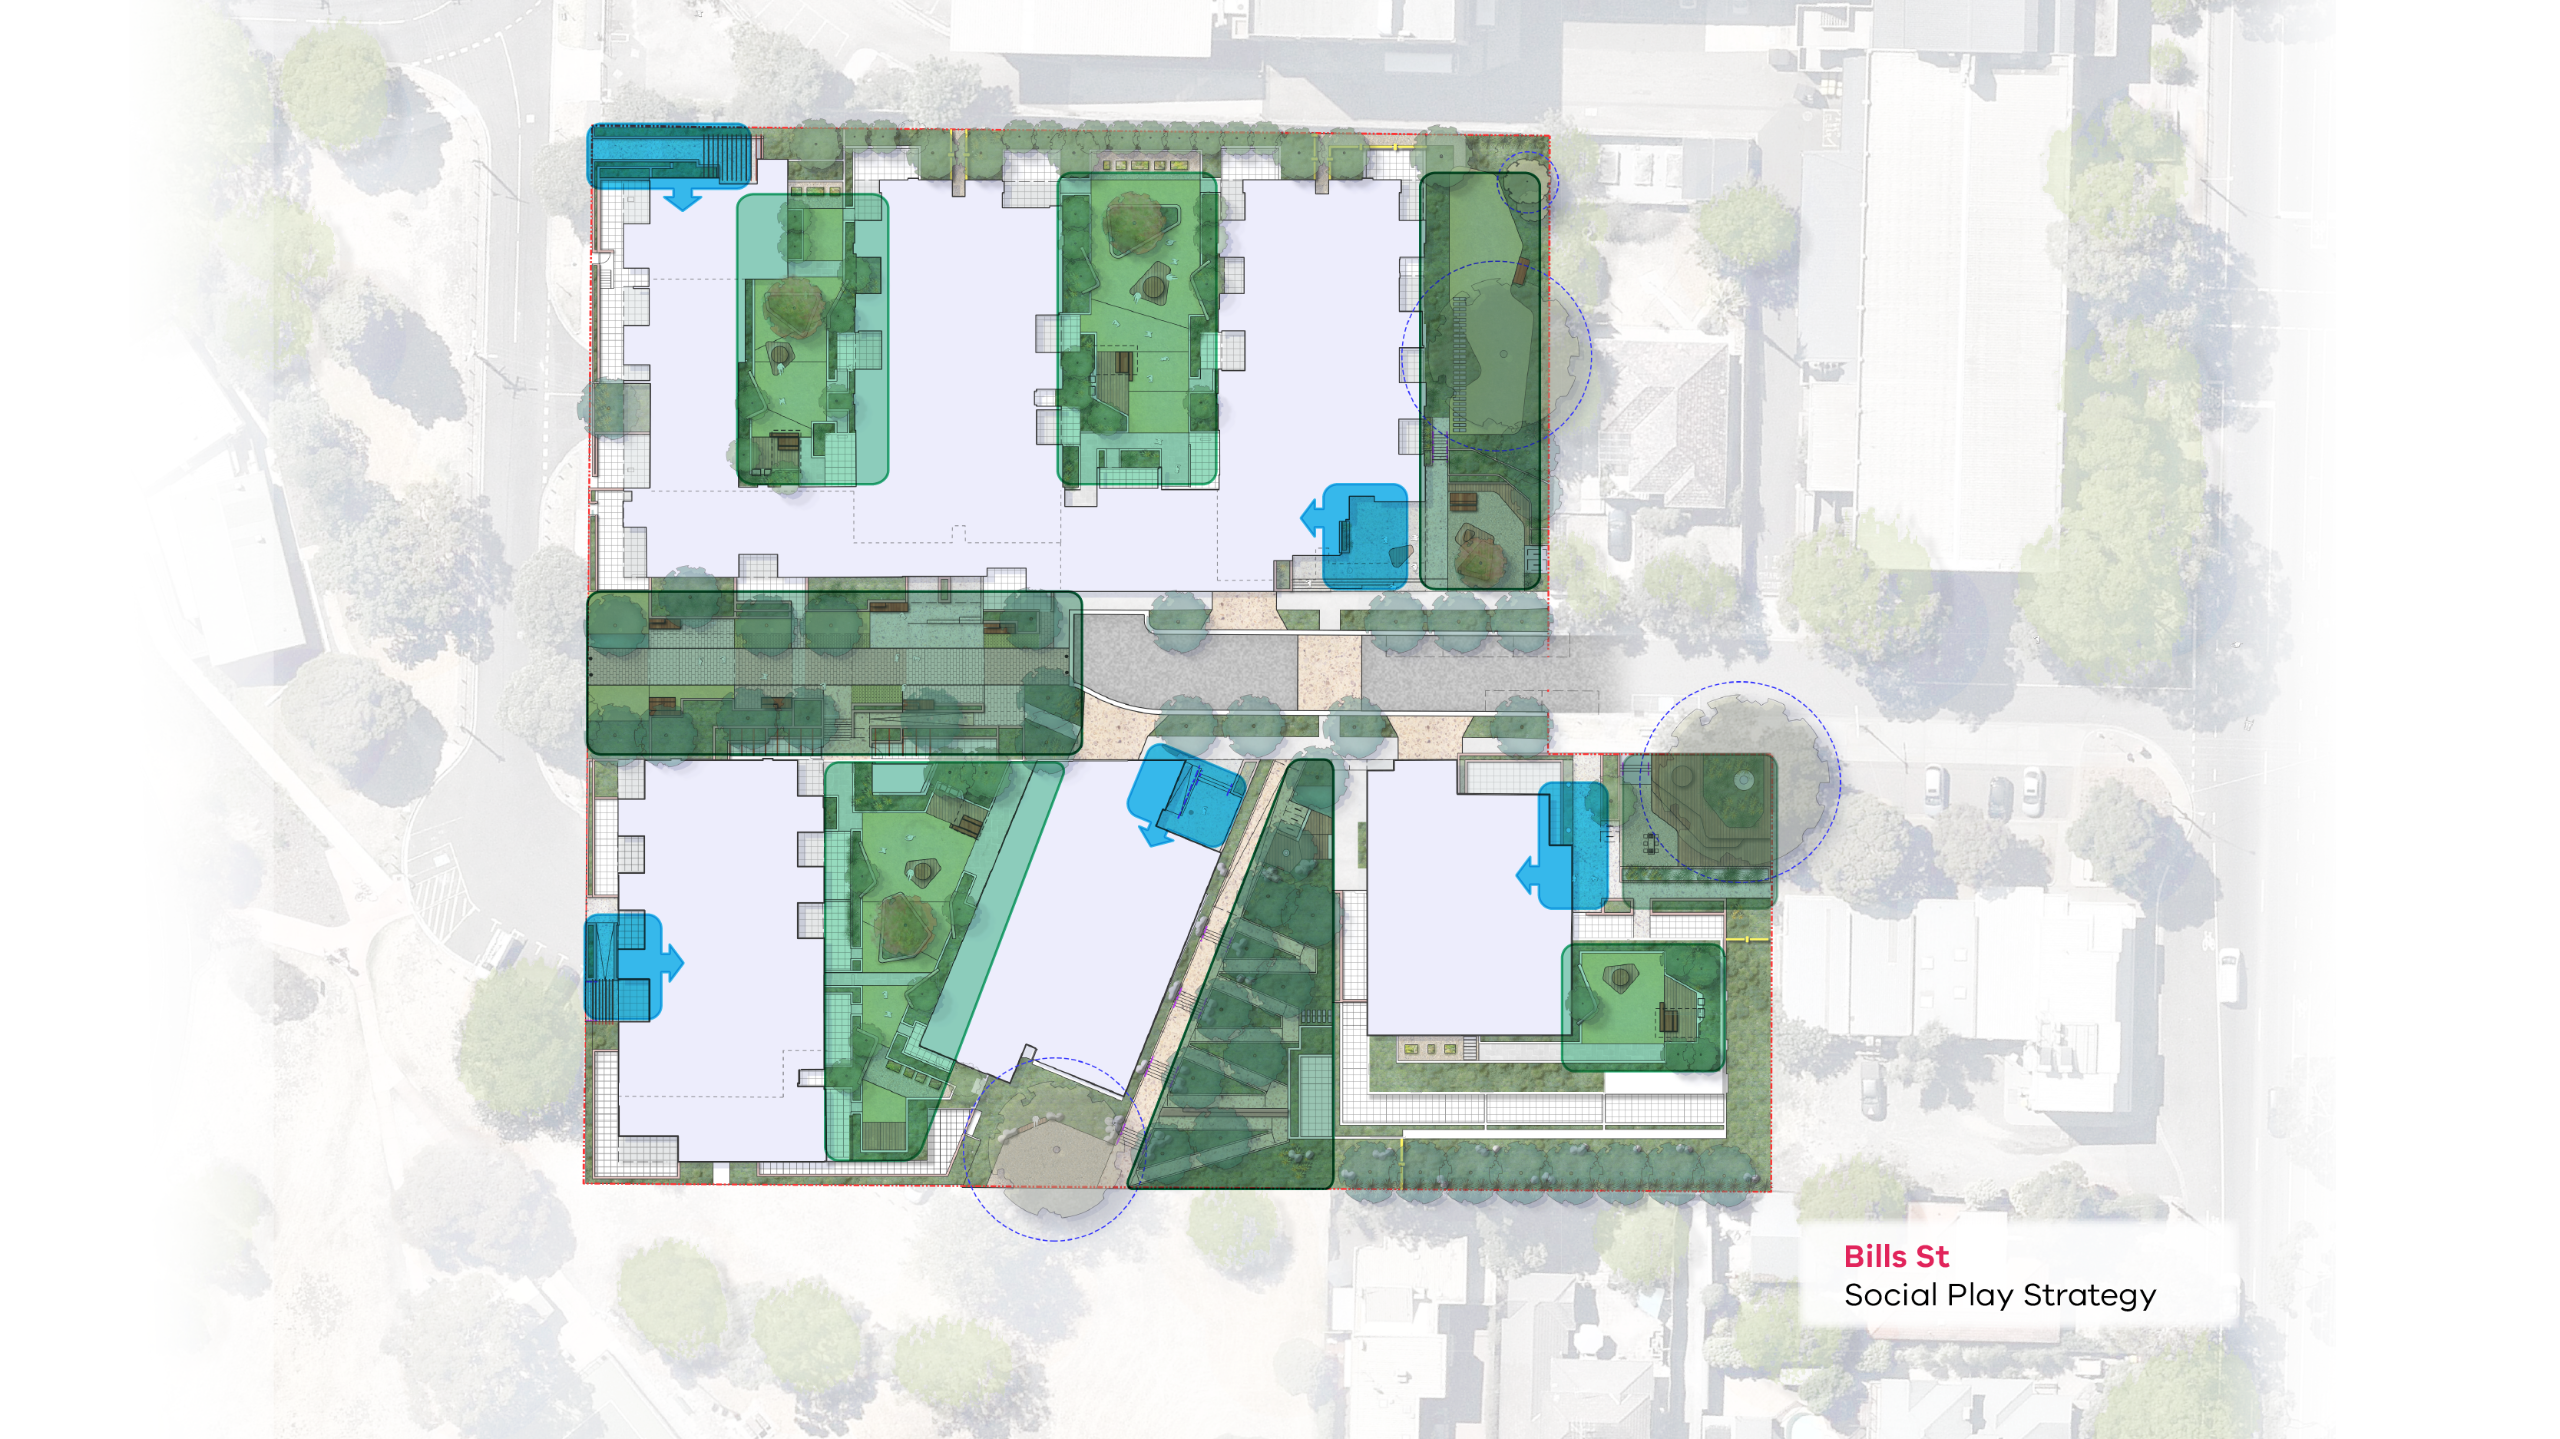 Map showing the locations of the different social play areas within the Bills Street redevelopment public spaces.